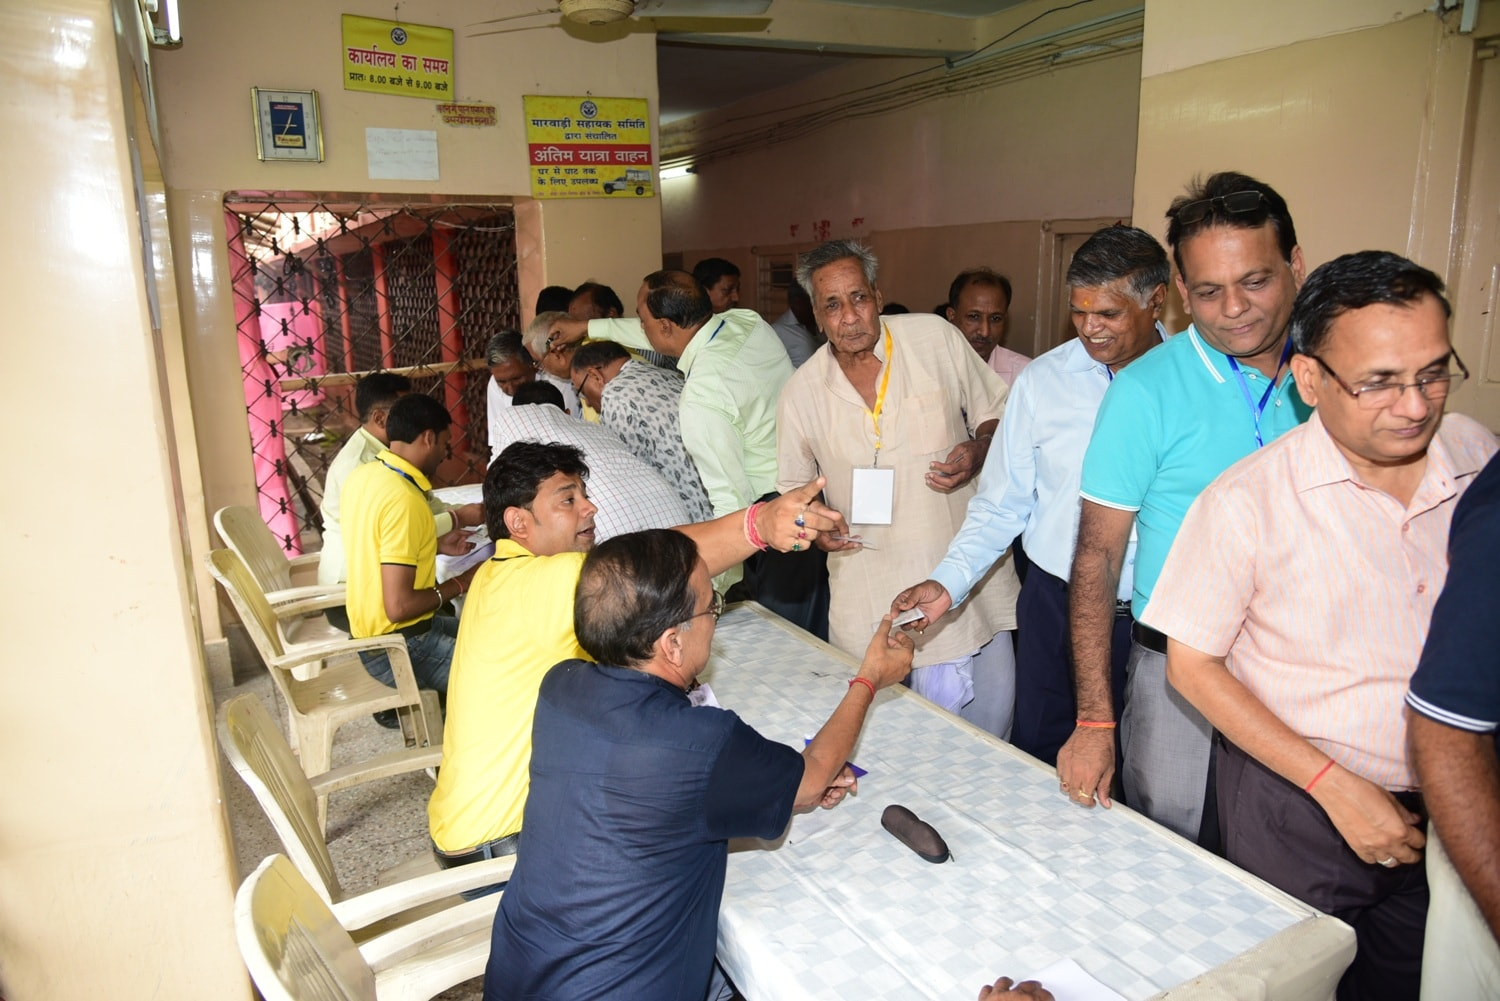 <p>Marwaris took part in Jharkhand Prantya Marwari Sangh Election on the Guru Purnima Day,Sunday</p>